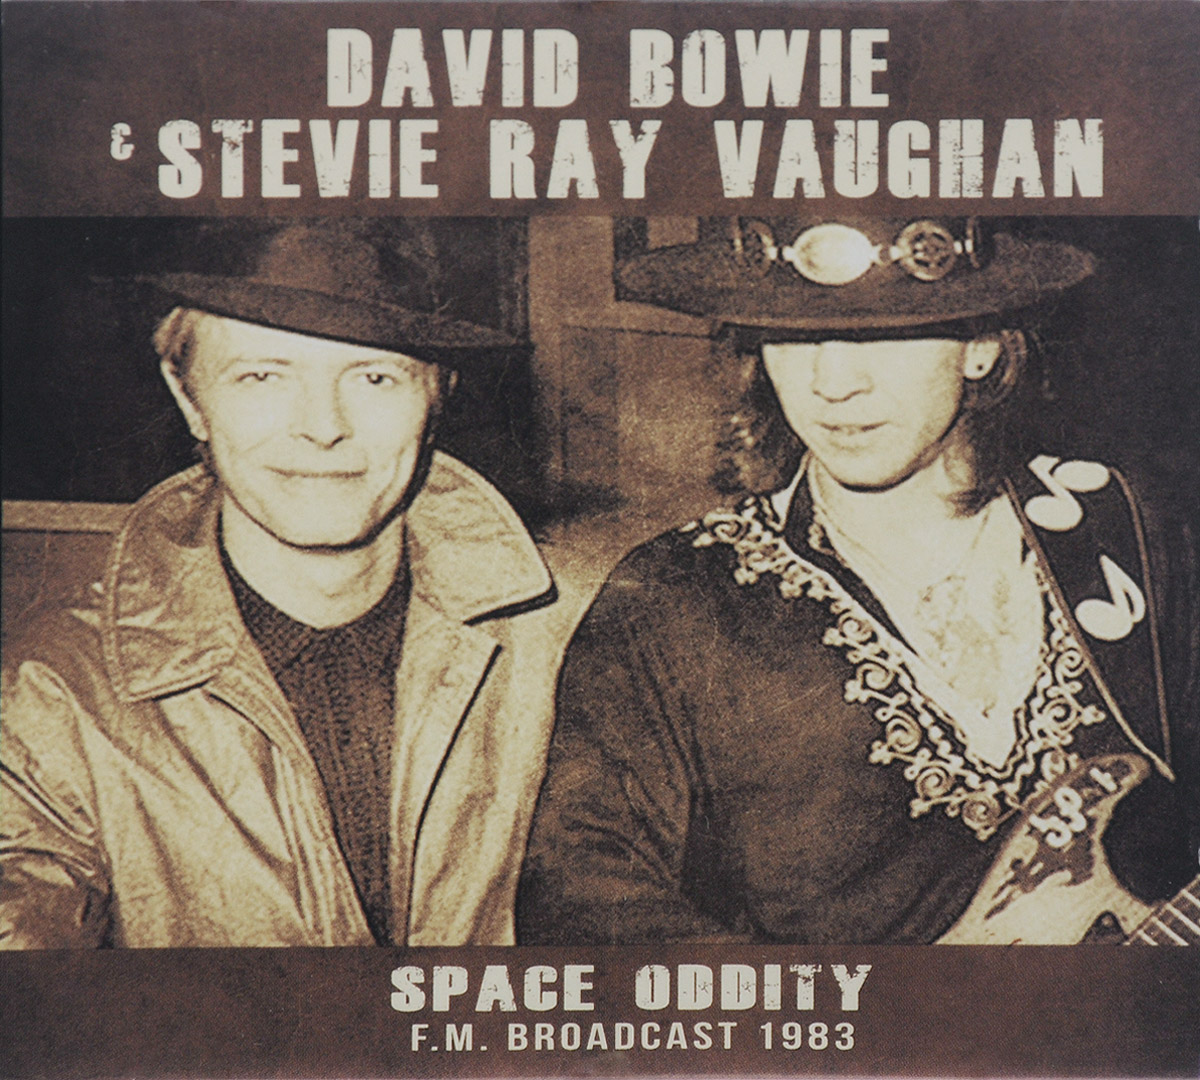 Дэвид Боуи,Стиви Рэй Воэн David Bowie & Stevie Ray Vaughan. Space Oddity F.M. Broadcast 1983 стиви рэй воэн the double trouble stevie ray vaughan and double trouble texas flood page 4 page 4